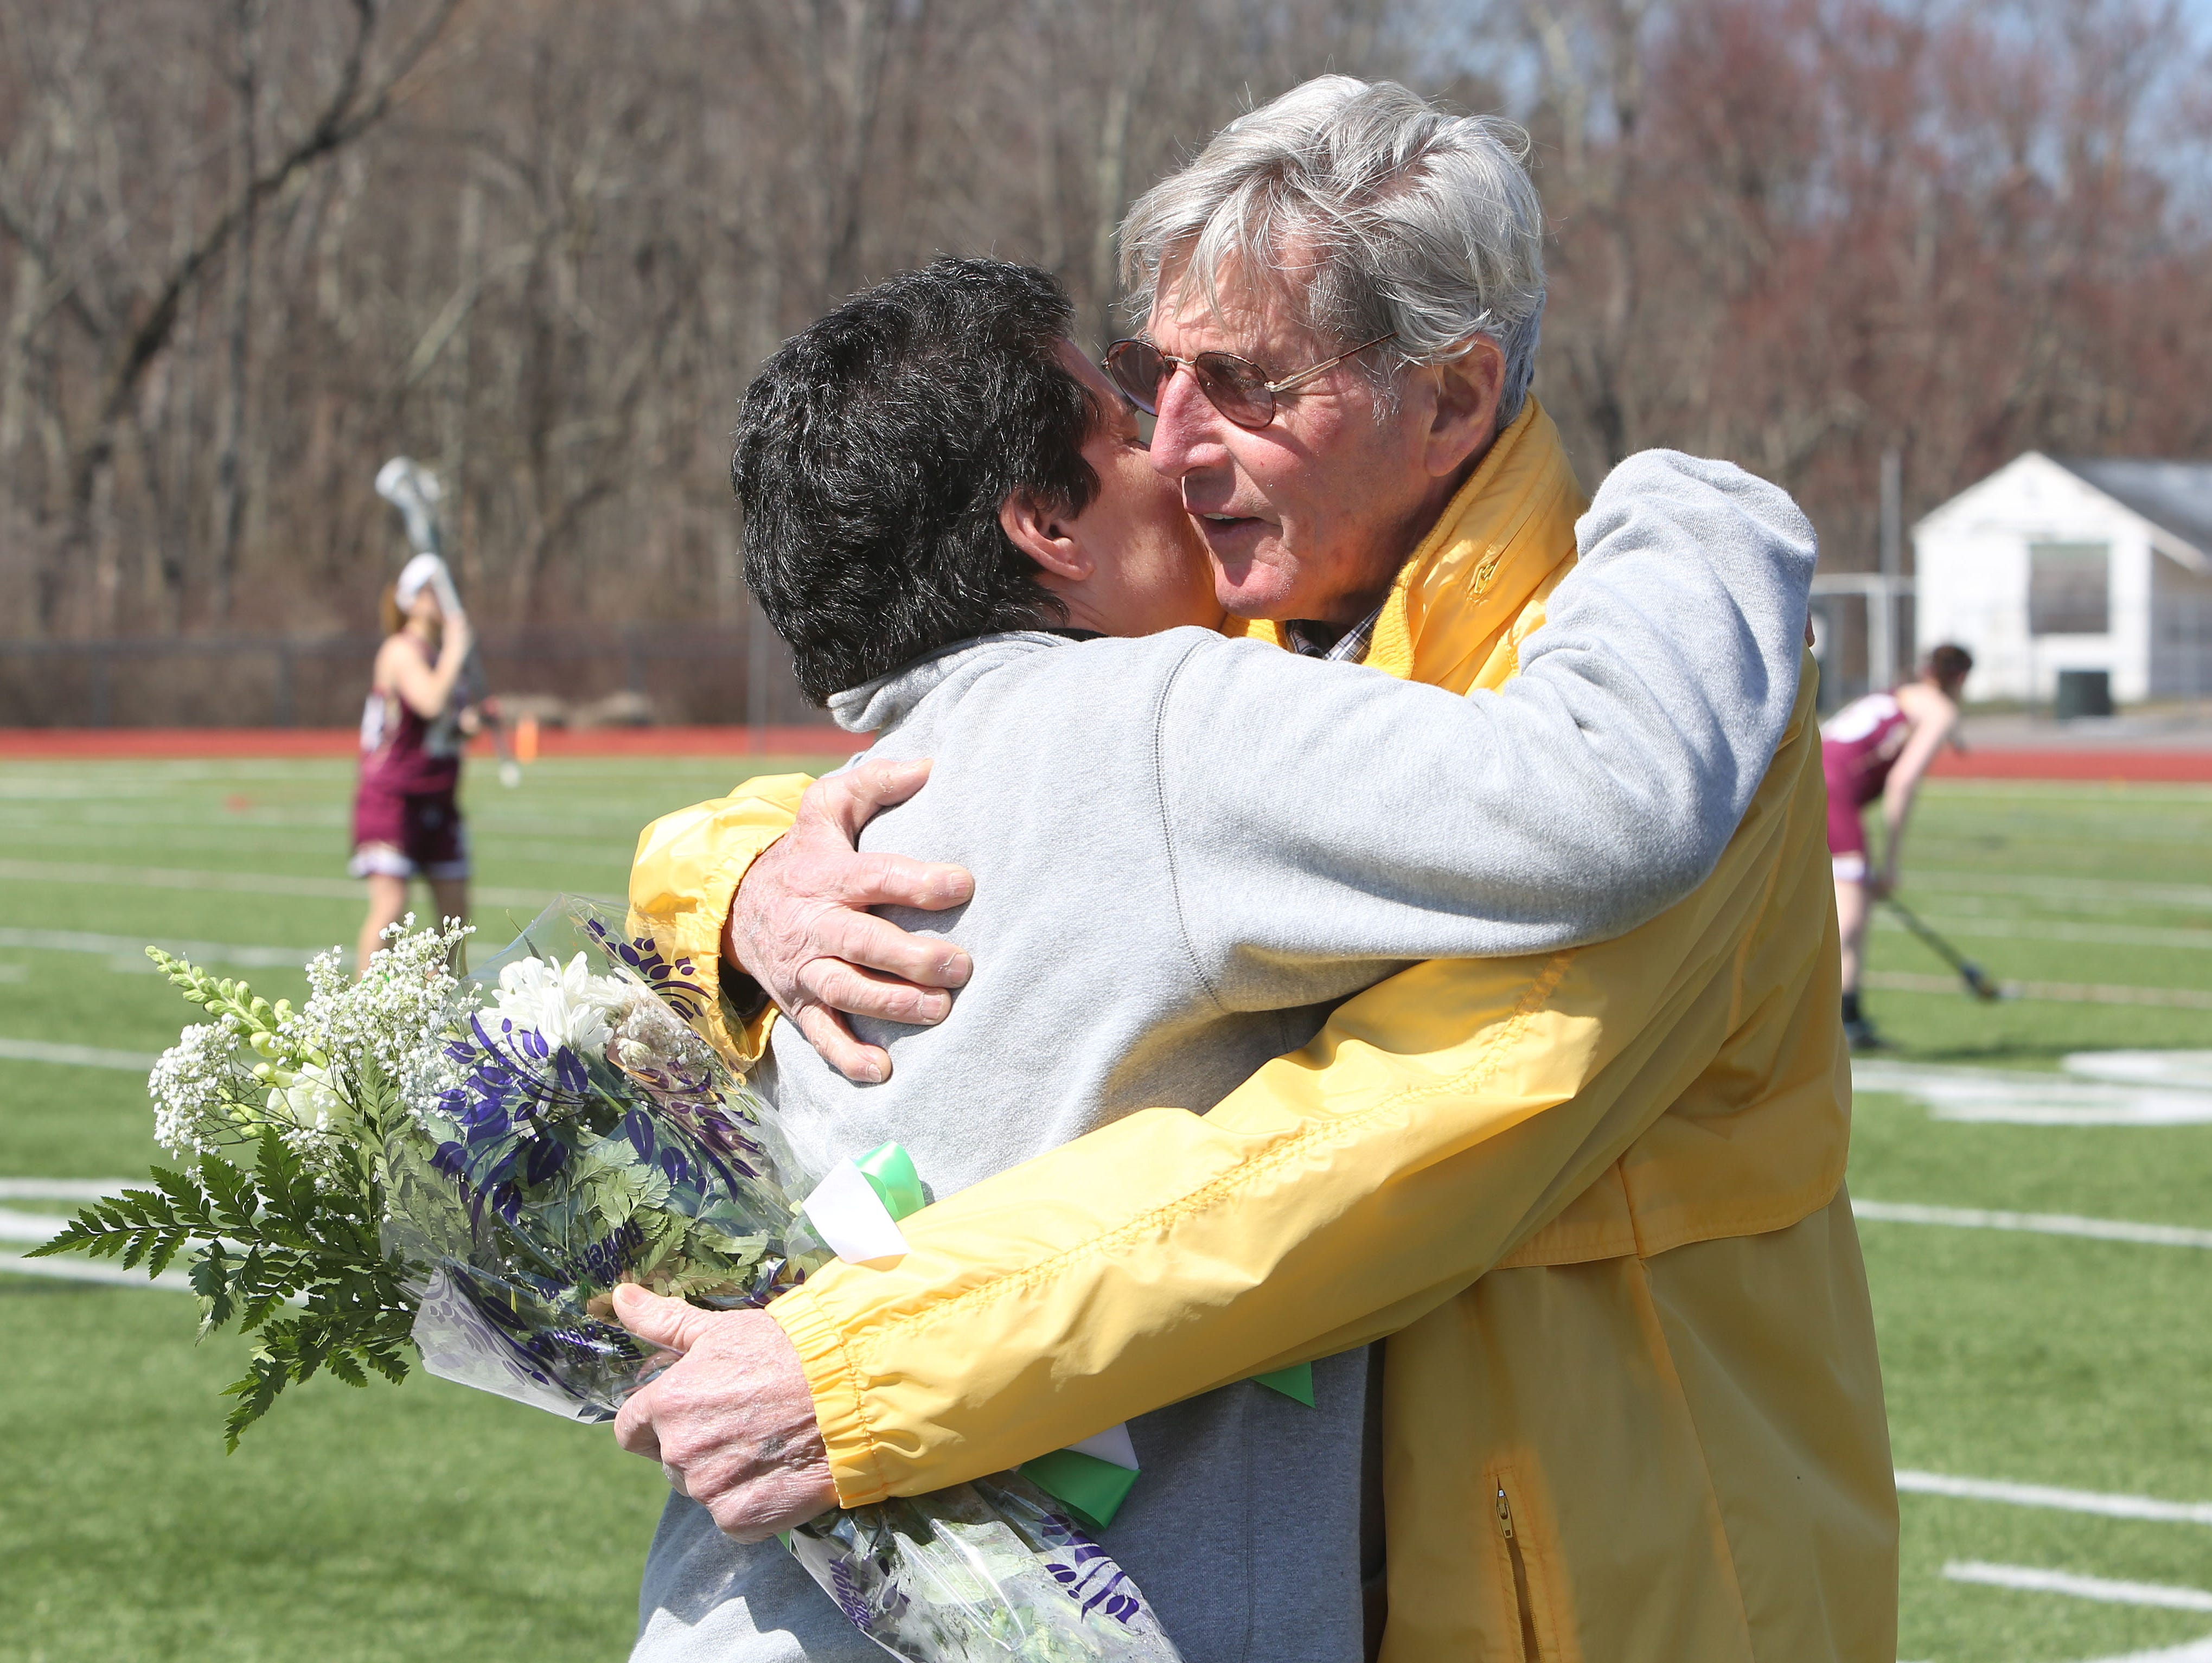 From right, Former Yorktown girl's lacrosse coach Bill Robertson gets a hug from present girl's coach Ellen Mager during a halftime ceremony honoring the past state championship teams at Yorktown High School during game against Arlington March 26, 2016.